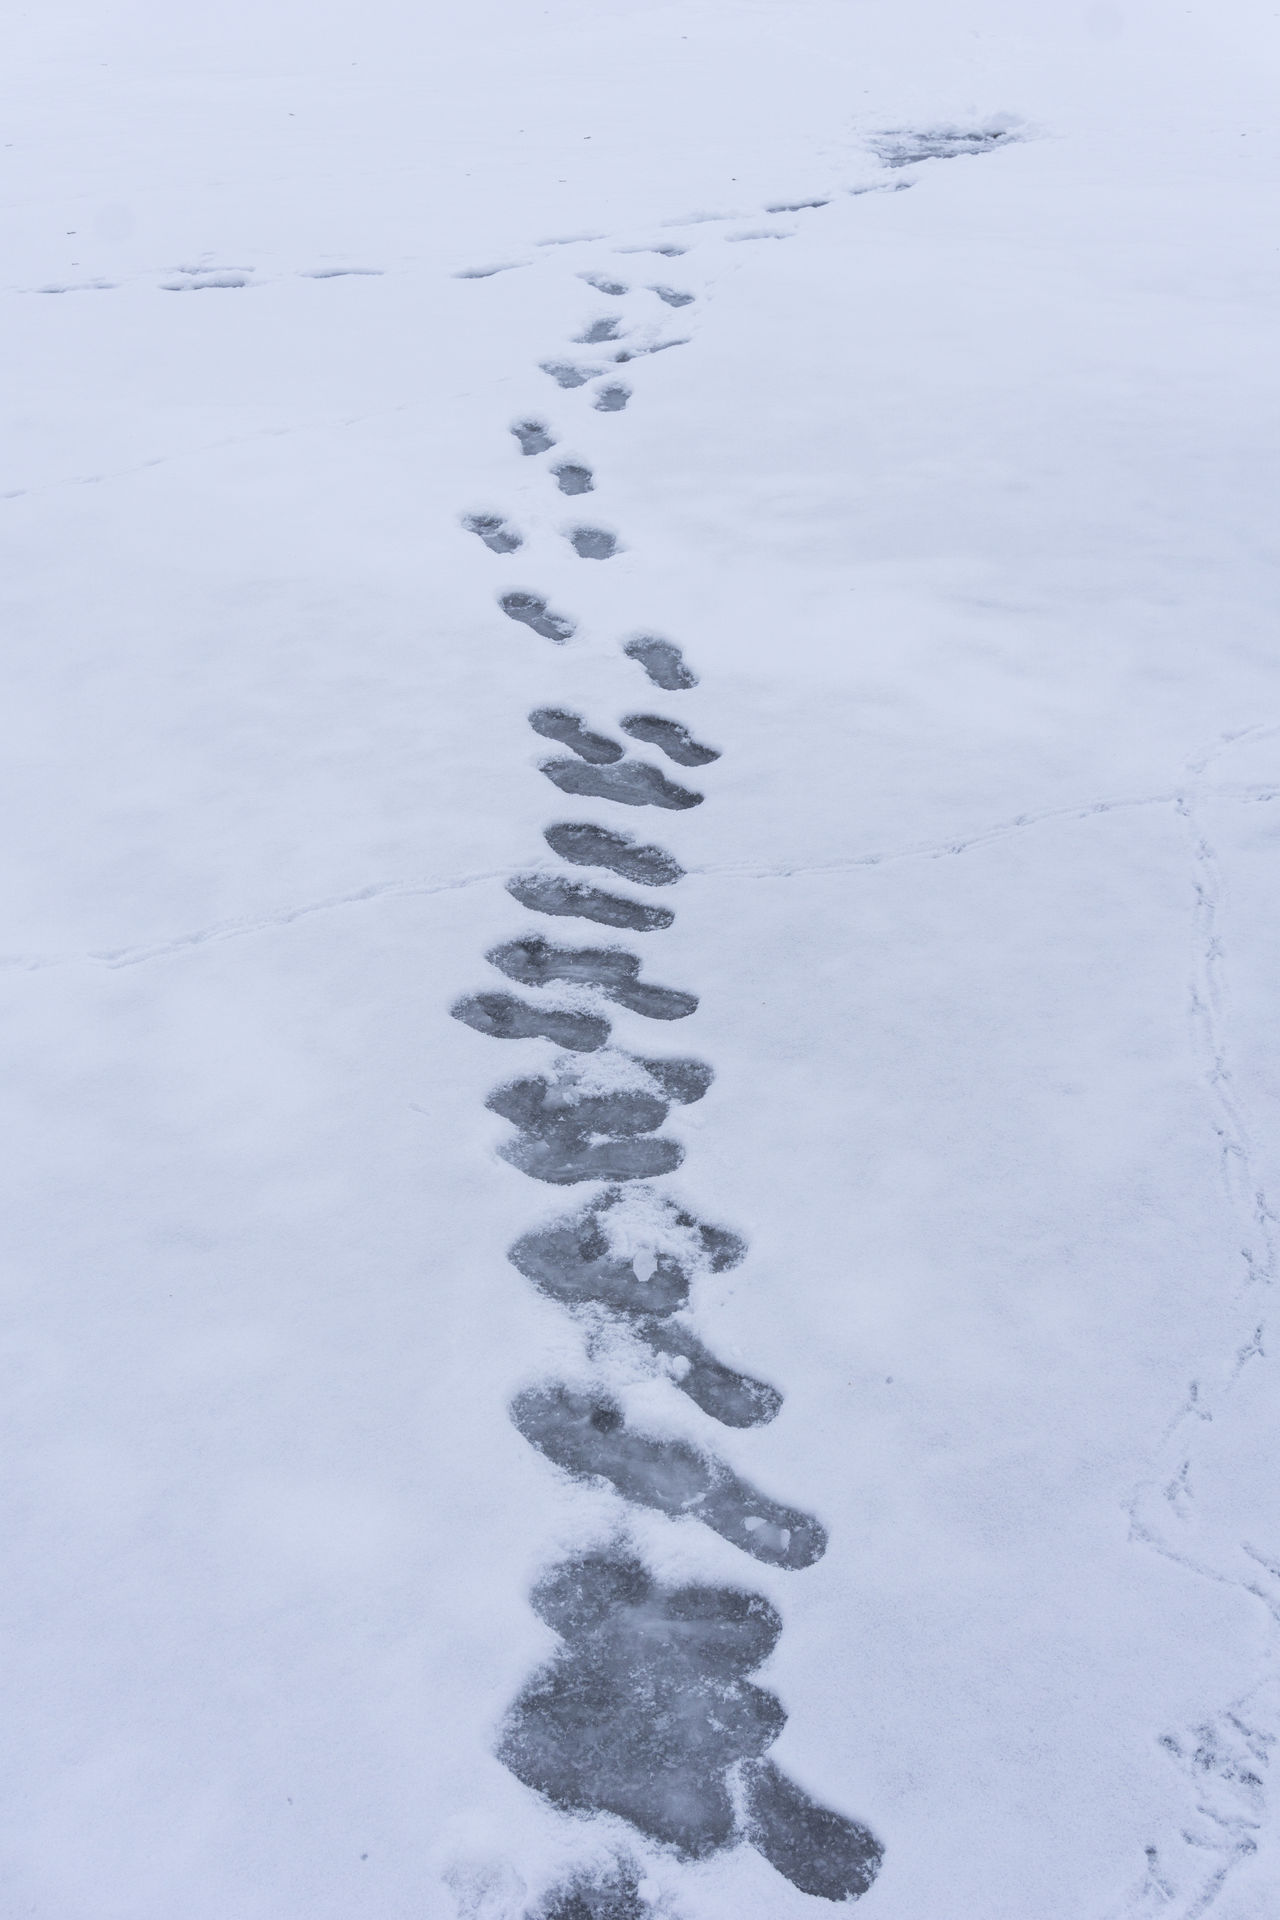 Footprints on a Ice Layer Footprints Frozen Ice Layers Iced Lake Layer Of Ice Nopeople Outdoors Silence Snow Steps Surface Traces Tracks Winter